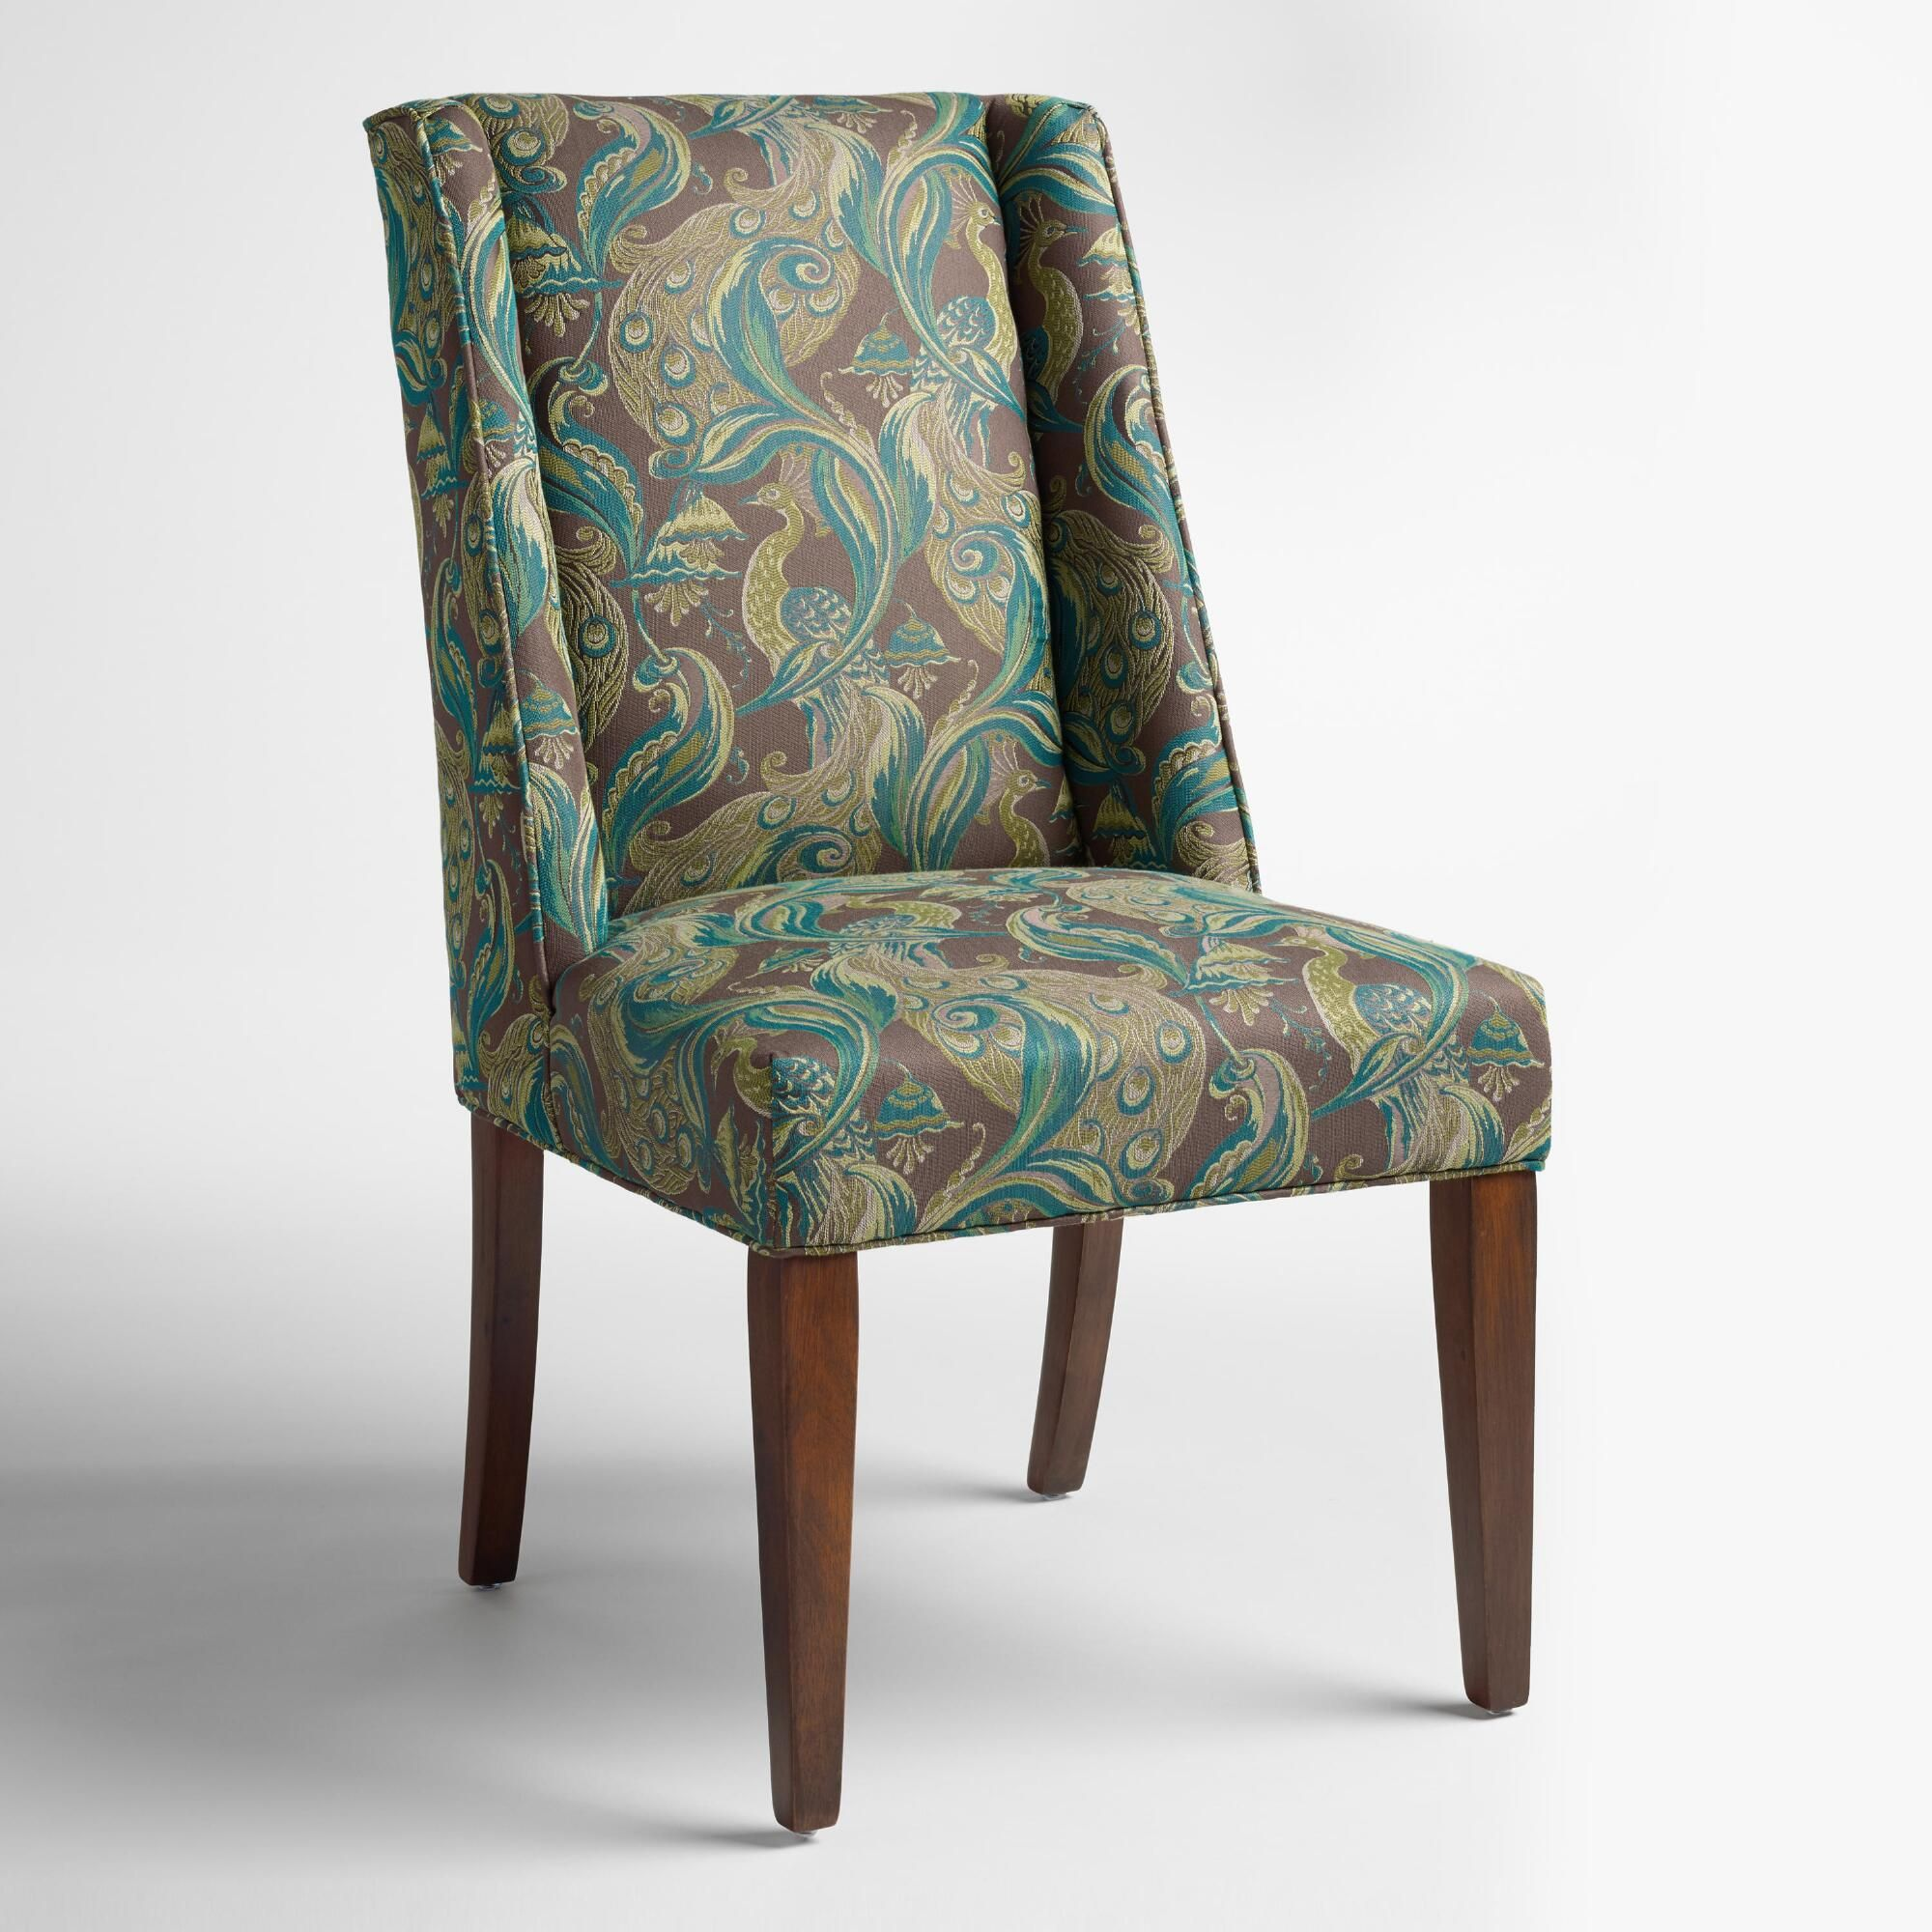 Upholstery fabric chair - Featuring Jacquard Fabric Upholstery With A Peacock Motif And Subtle Wingback Profile Our Upholstered Dining